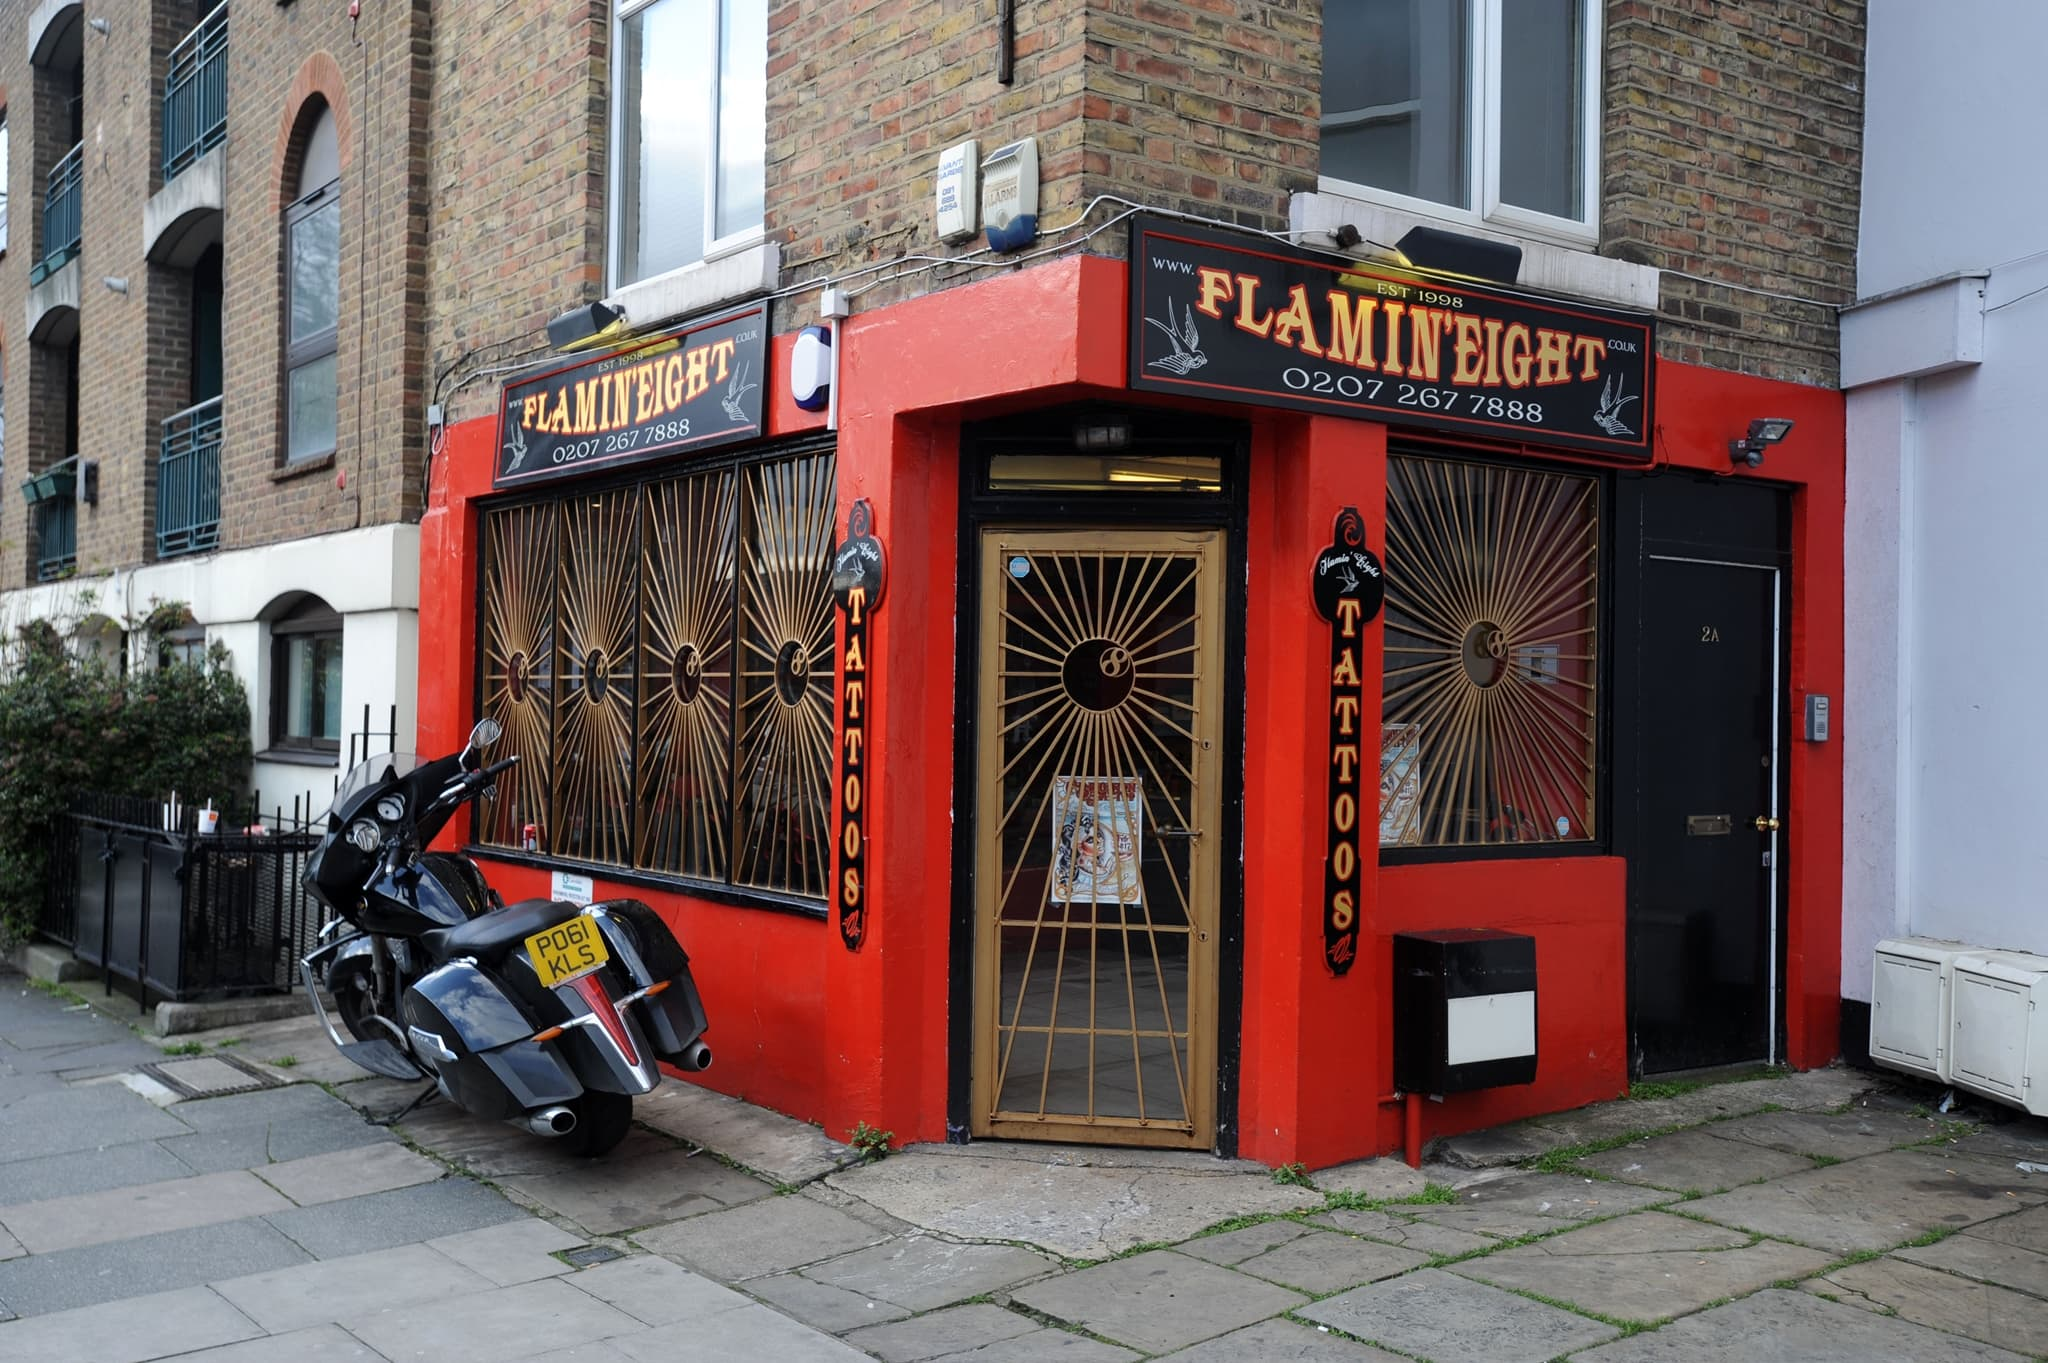 Many celebrities have had their finger tattoos inked at Flamin' Eight tattoo studio on 2 Castle Road in London